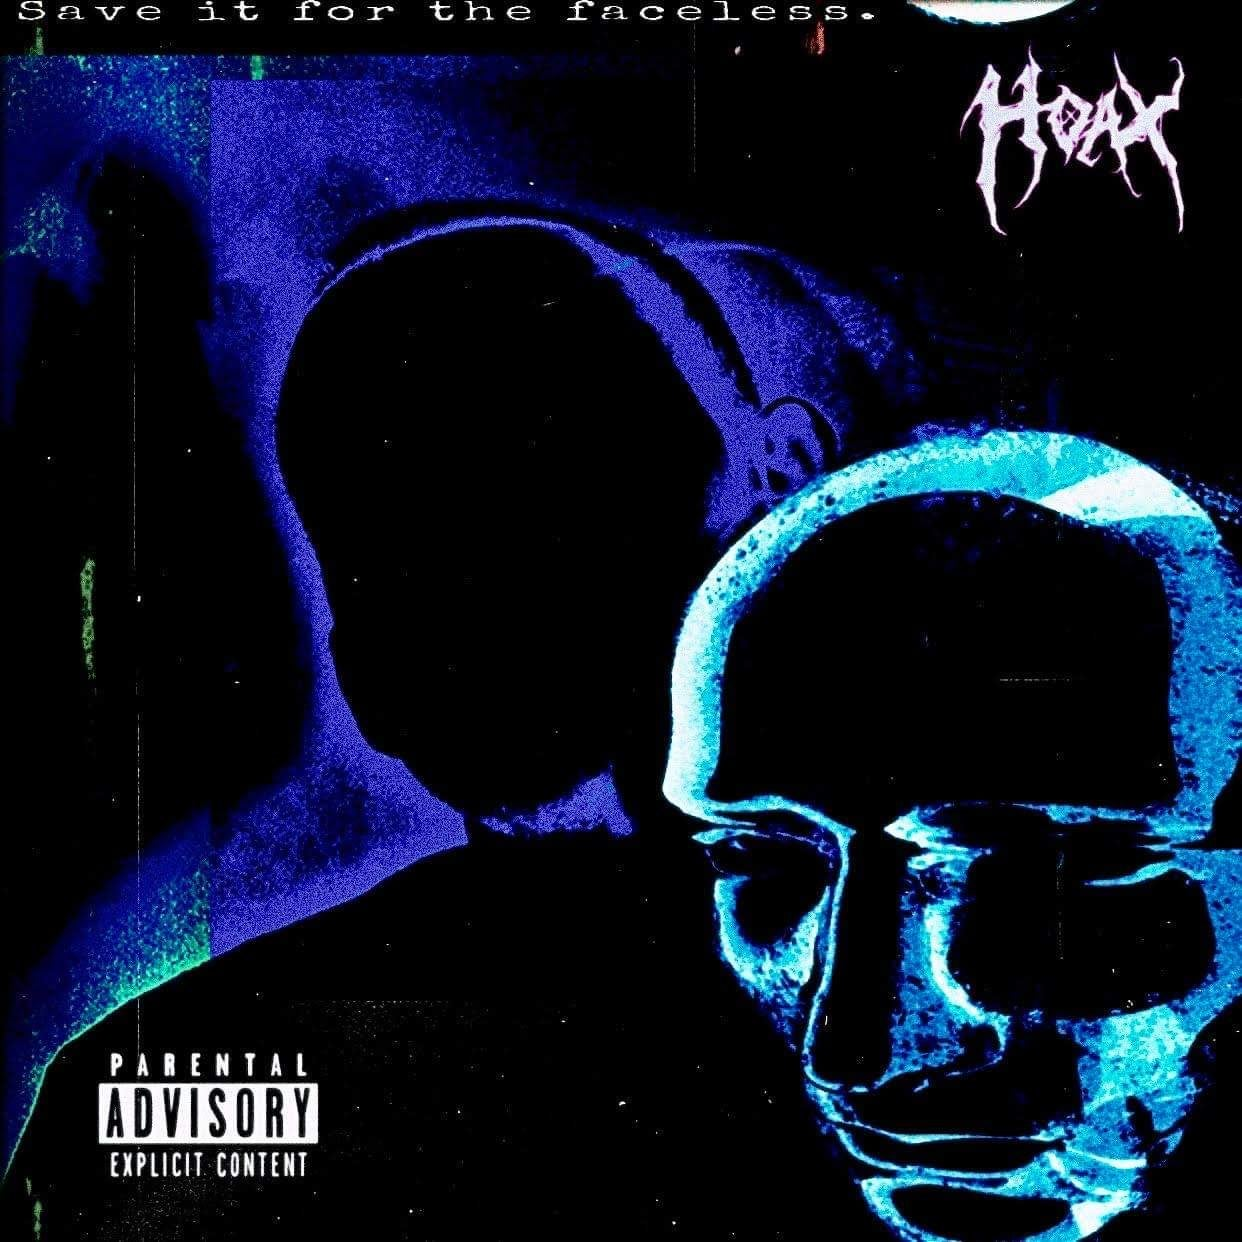 """Image of HOAX """"Save It For The Faceless"""" (CD)"""